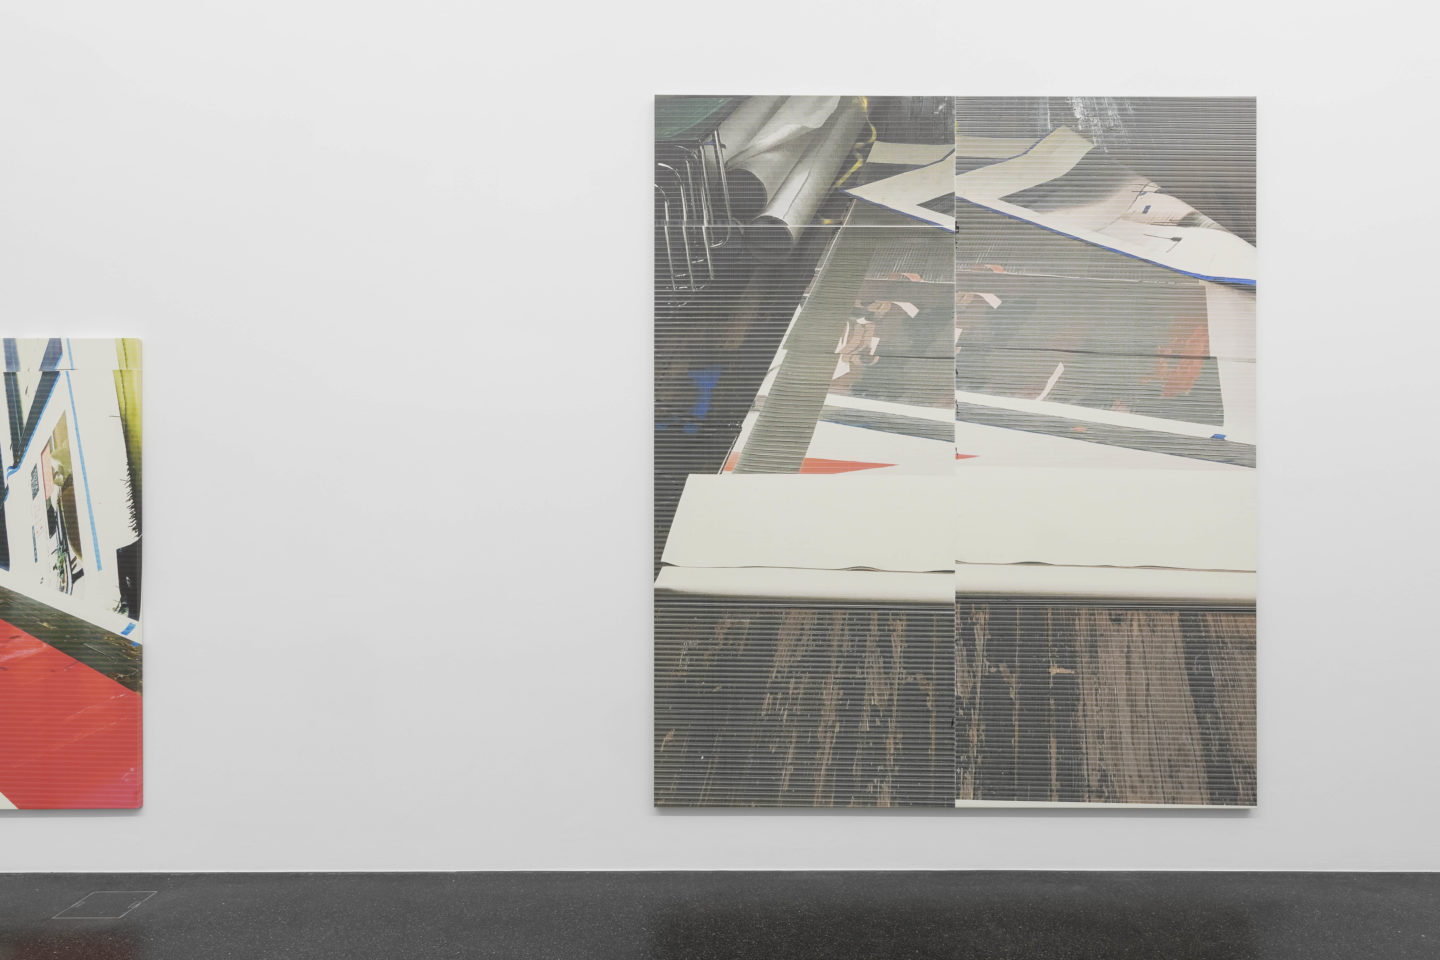 Exhibition View Wade Guyton «Fire and Fury» at Galerie Francesca Pia, Zurich, 2018 / Photo: Gunnar Meier / Courtesy: the artist and Galerie Francesca Pia, Zurich